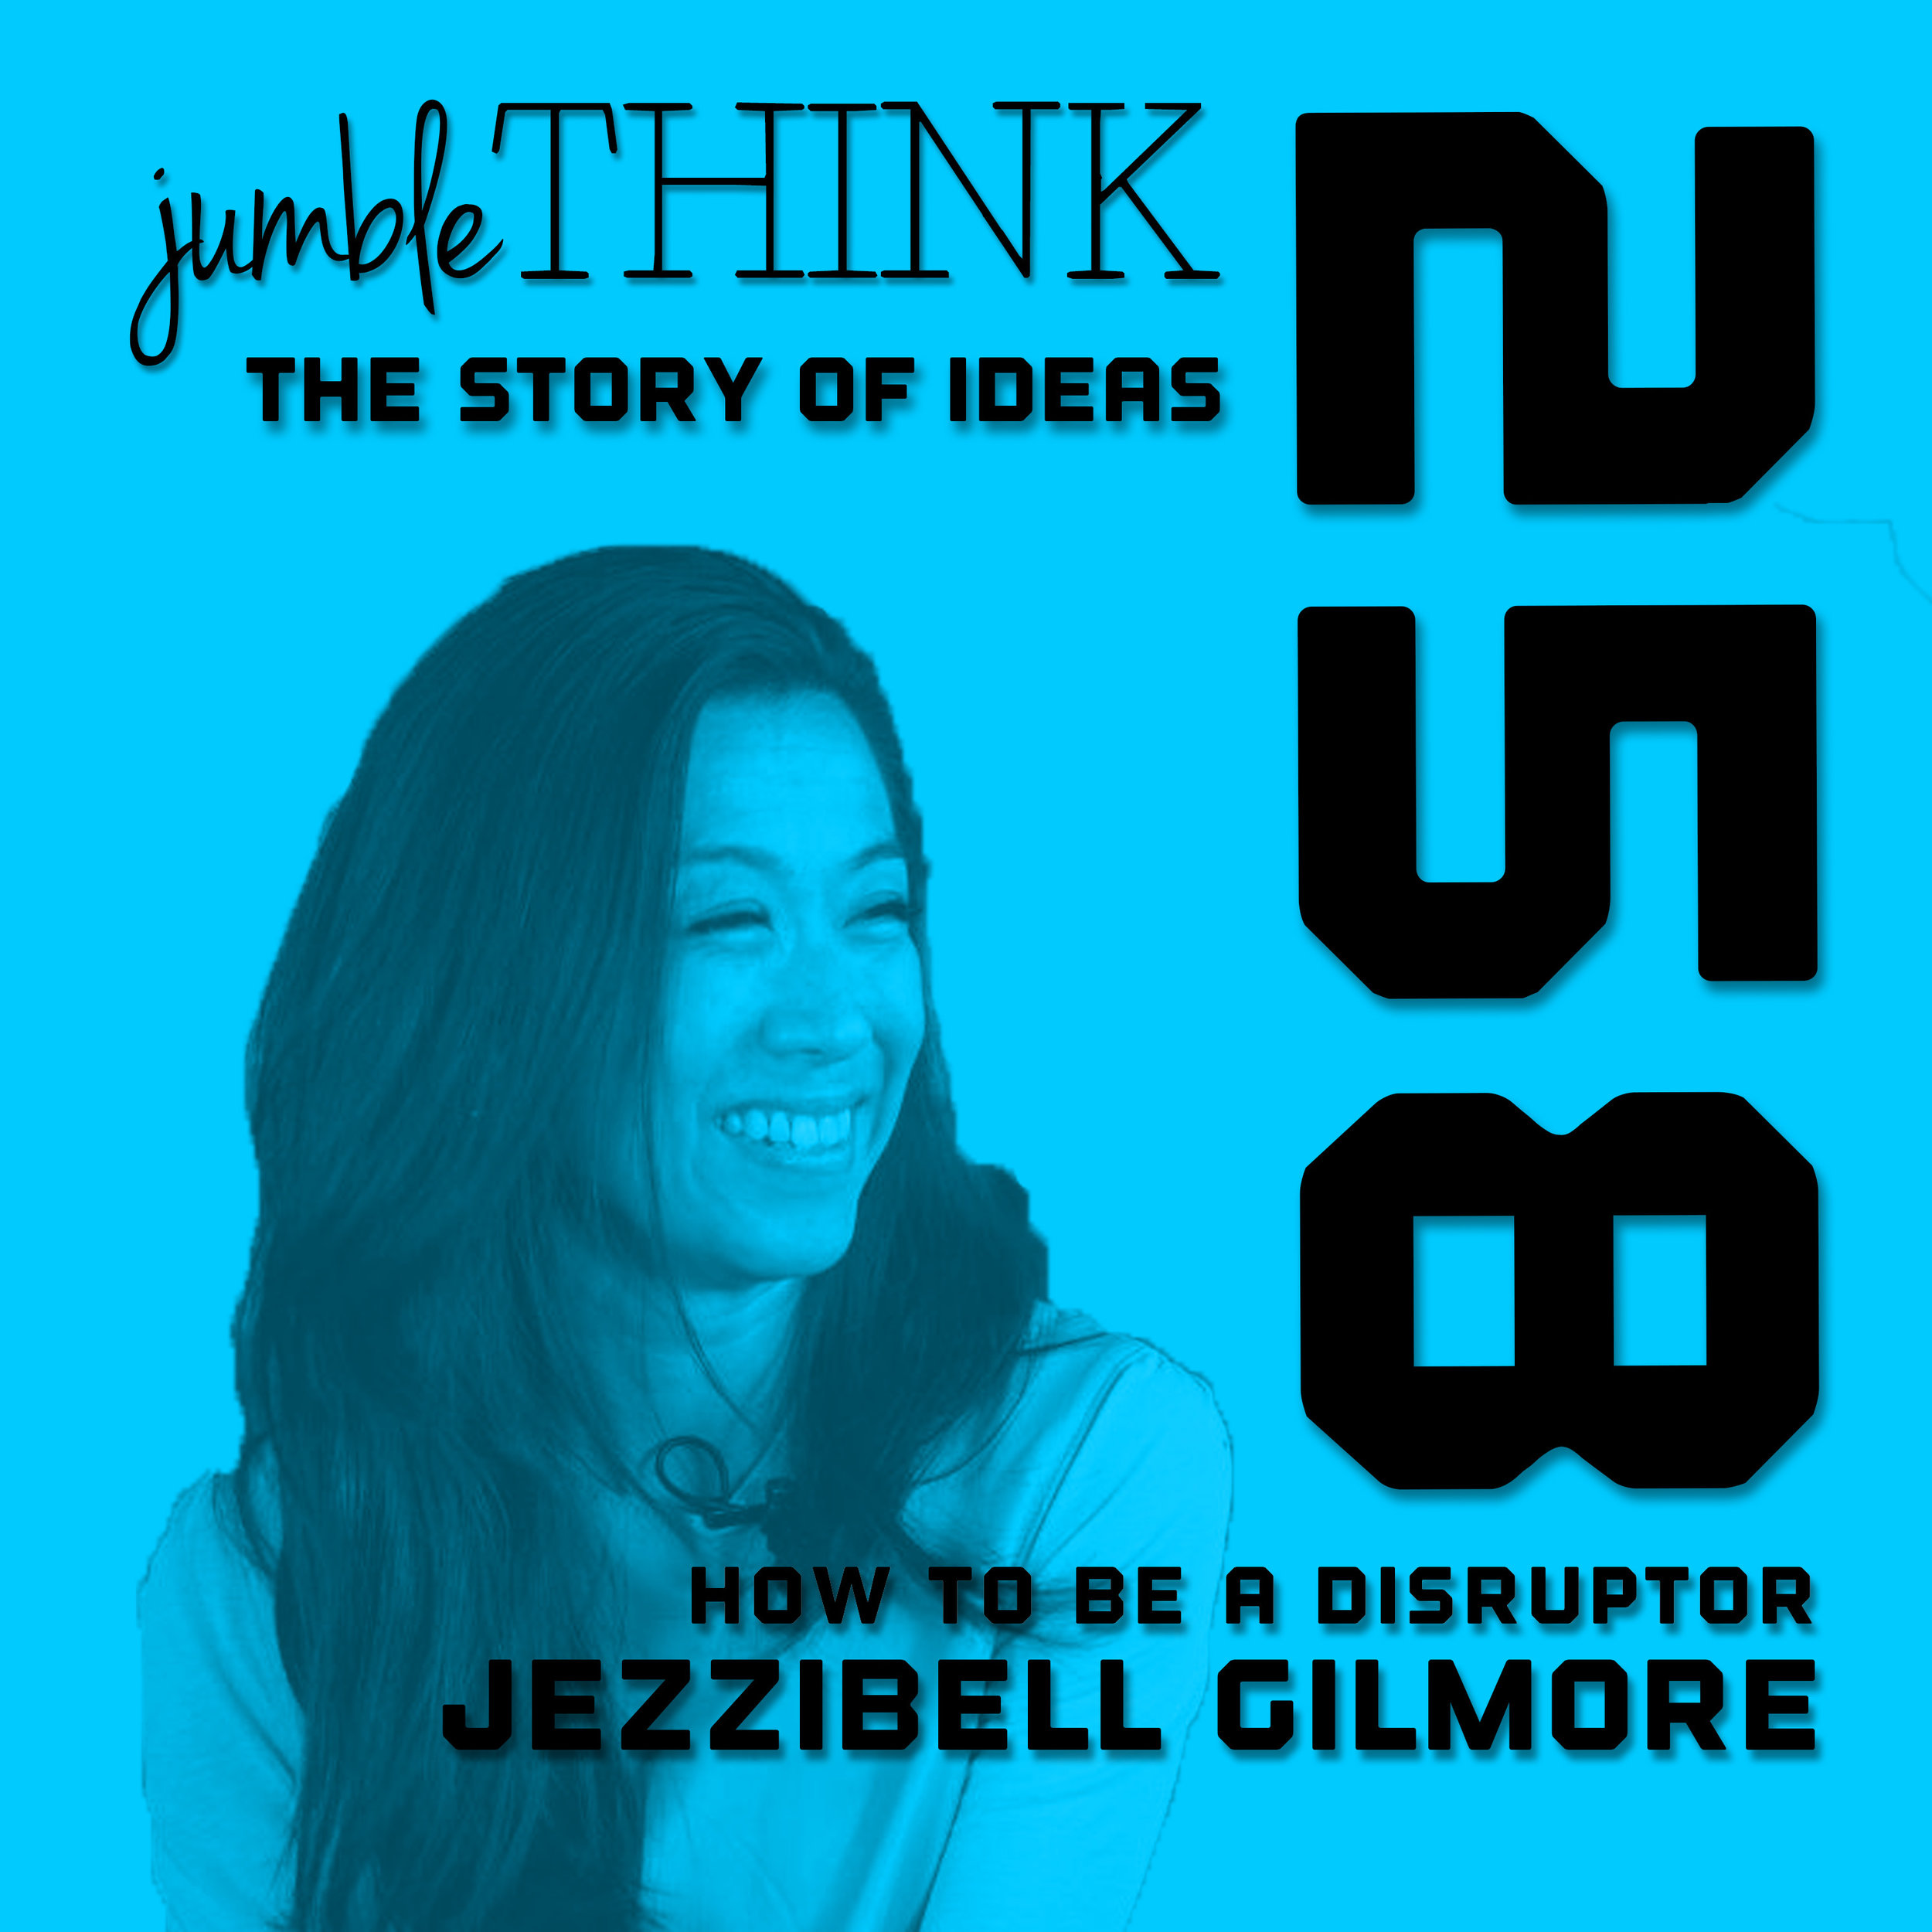 How to be a Disruptor